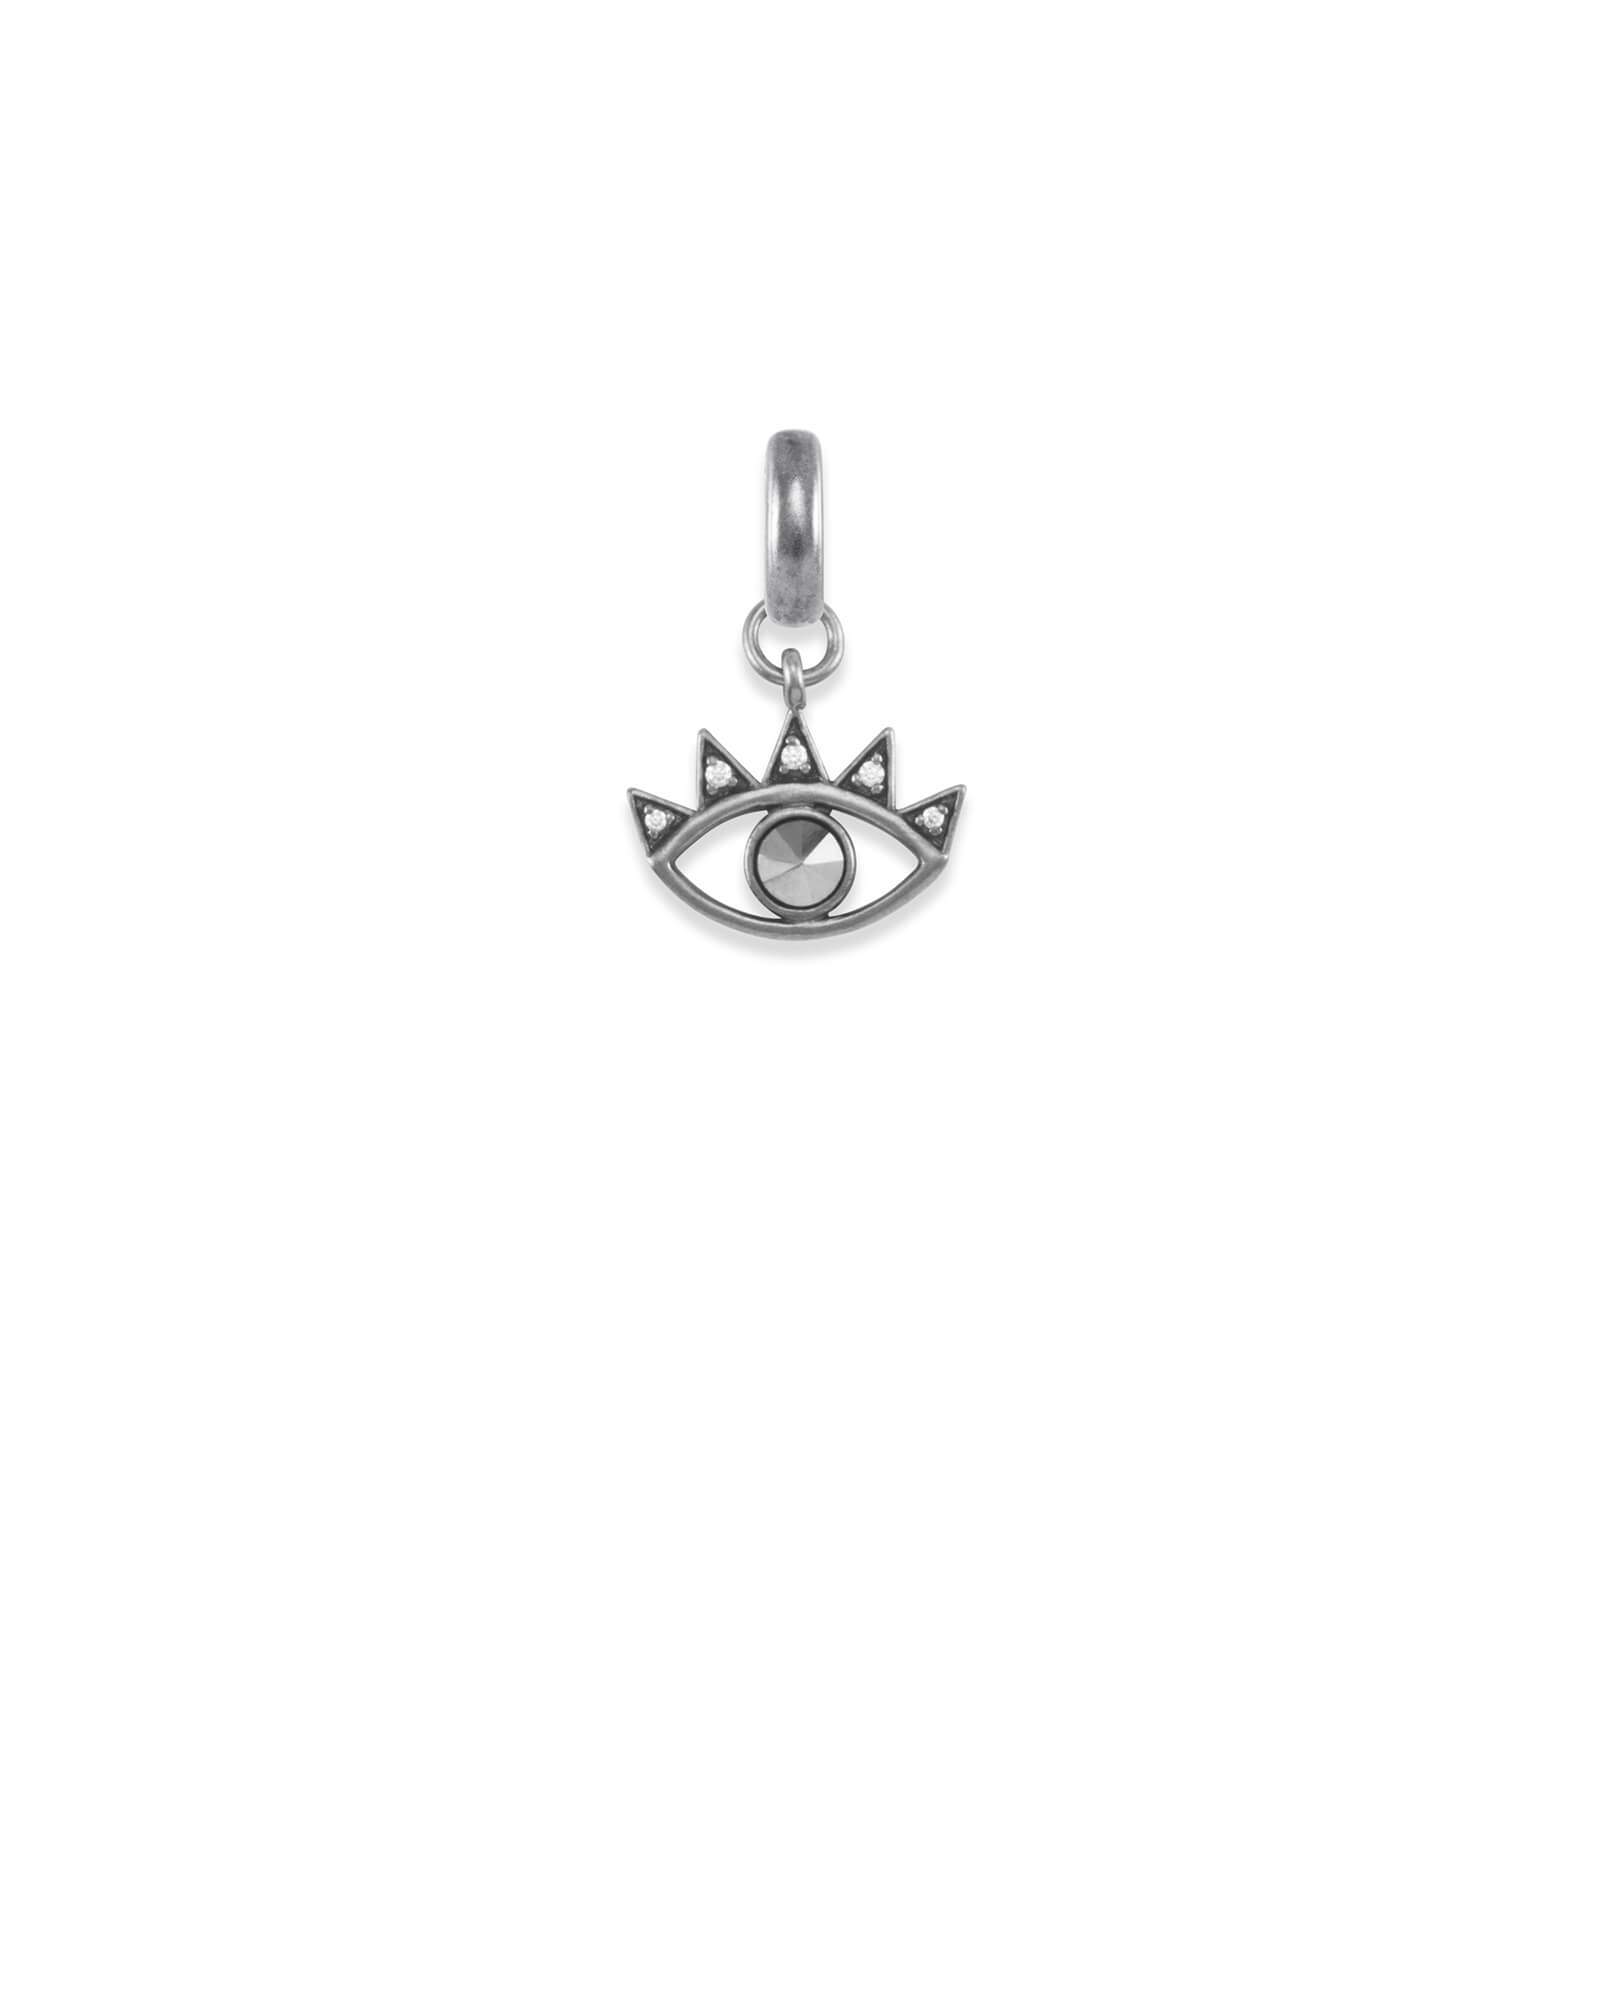 Bright Eye Charm in Vintage Silver